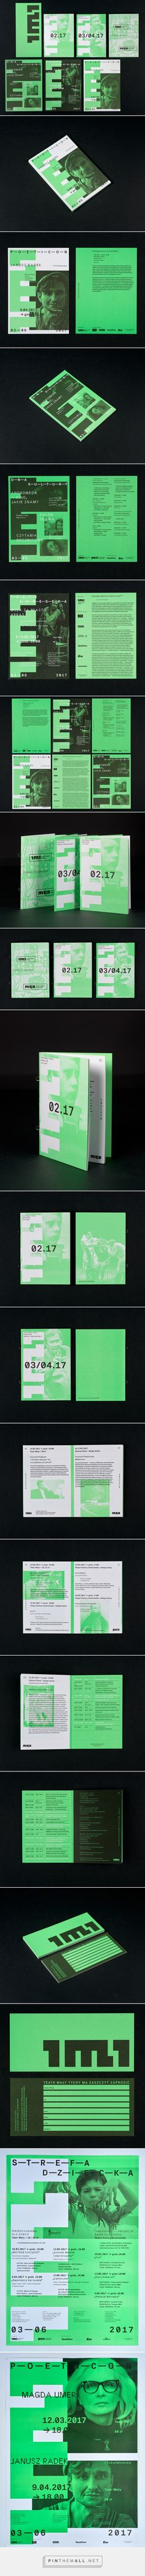 Small Theatre Visual Identity on Behance... - a grouped images picture - Pin Them All